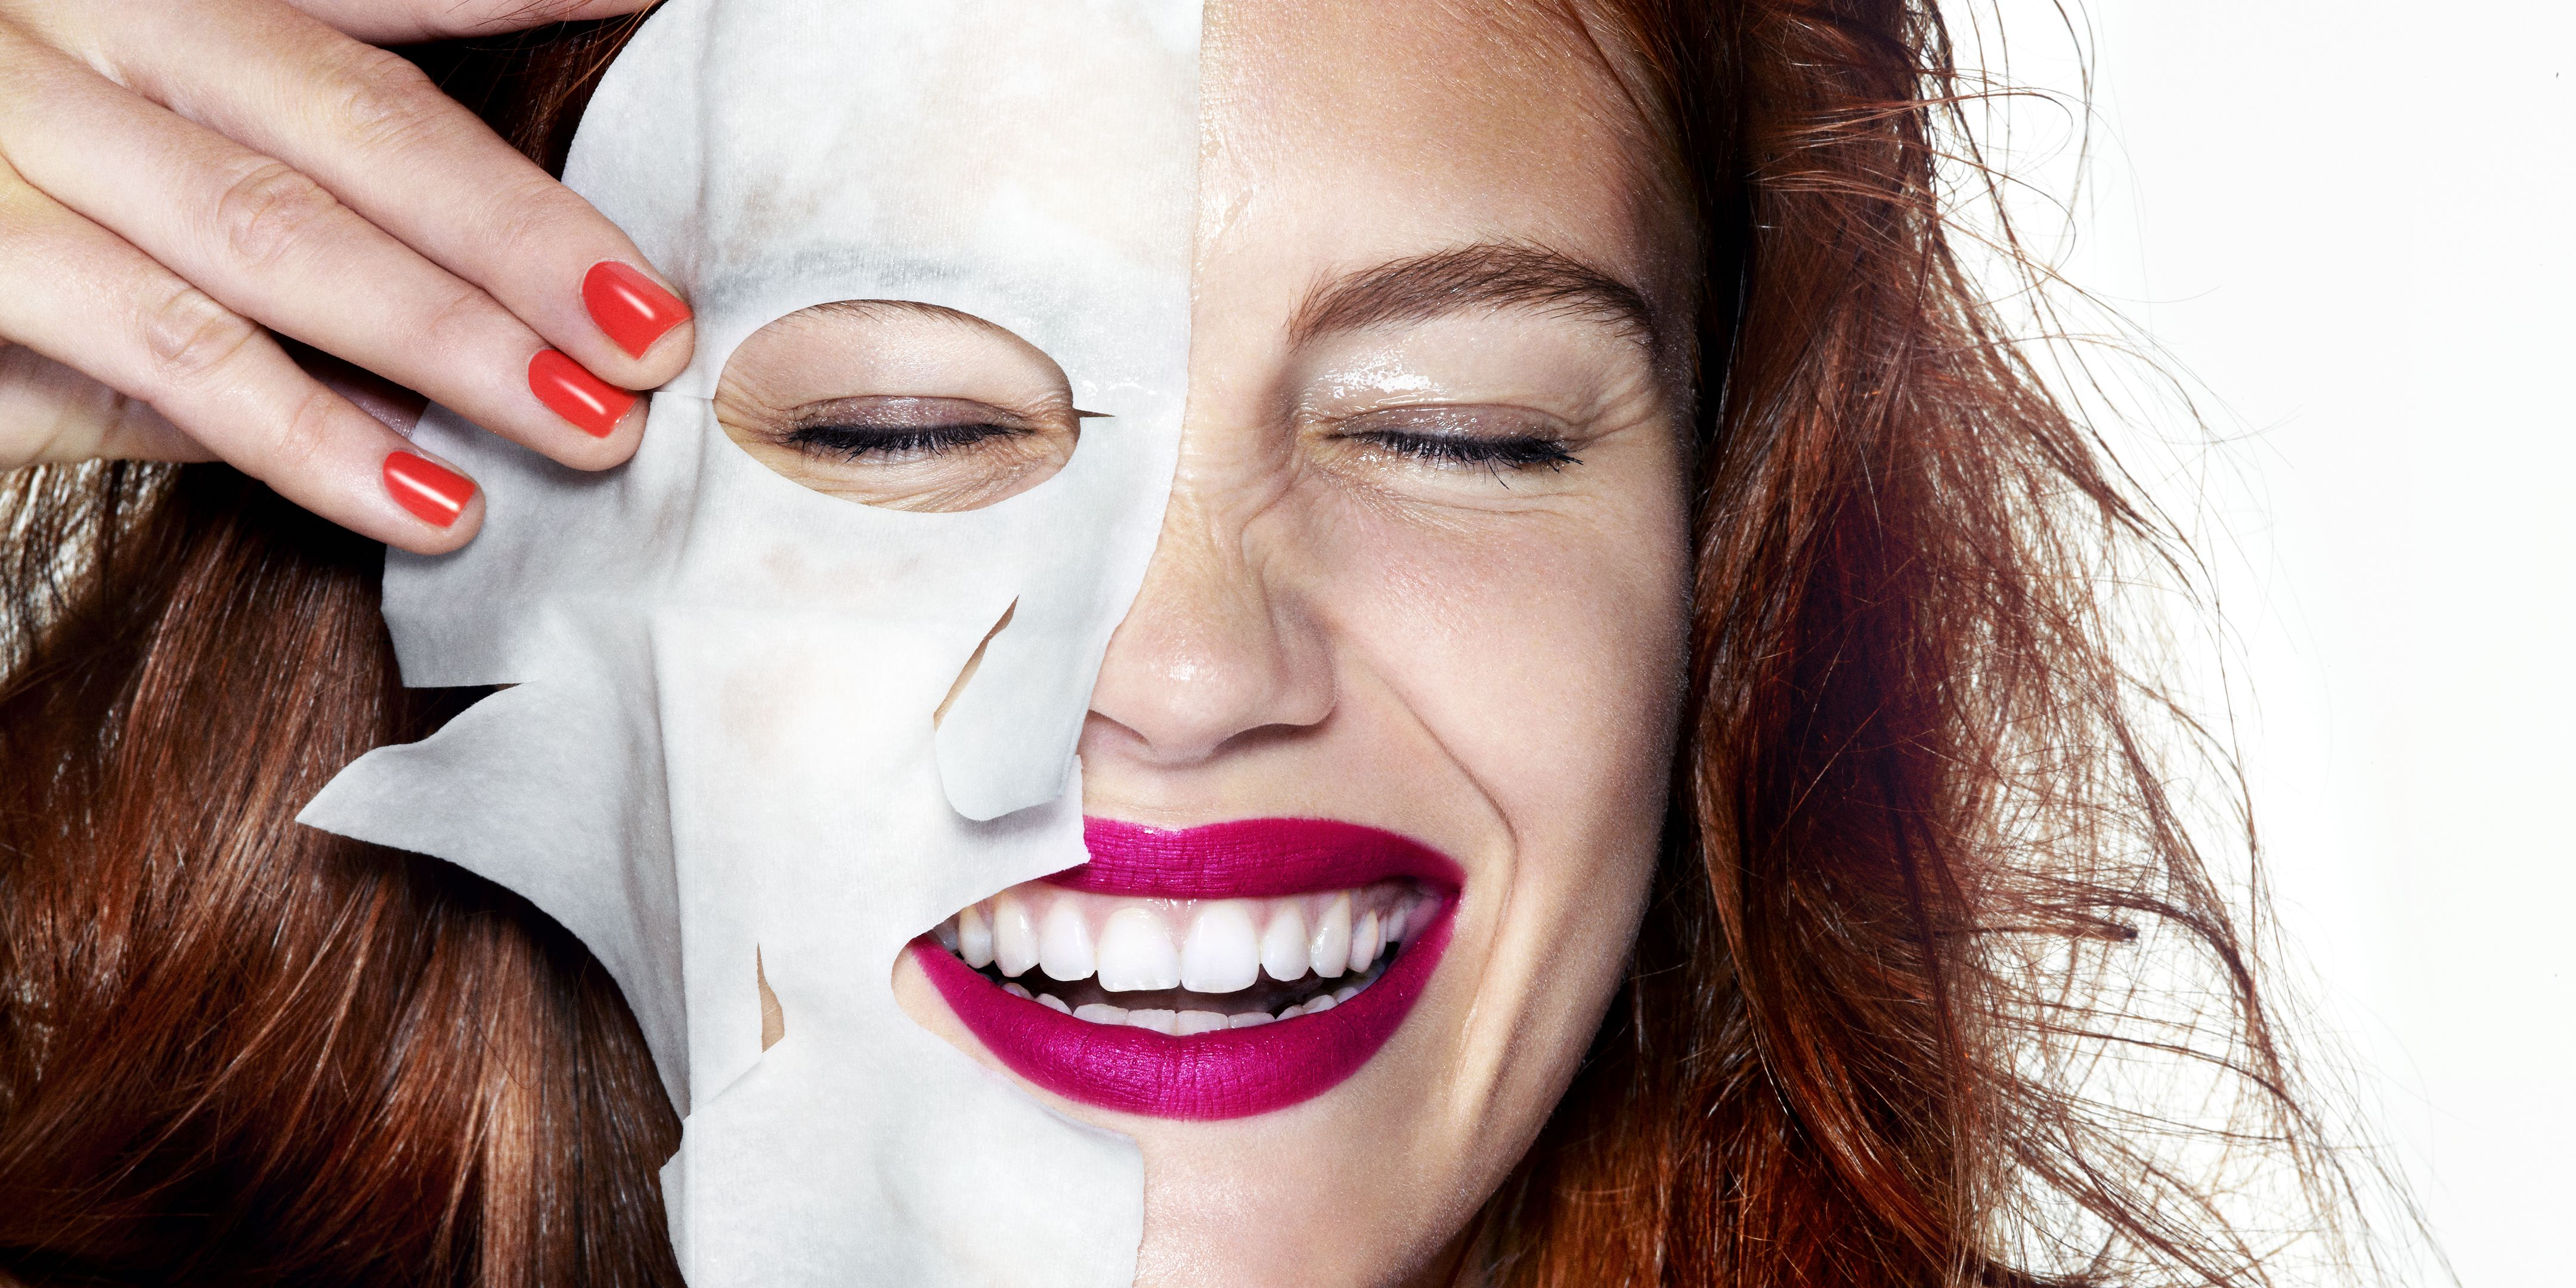 6 paper sheet masks to try facial best face products